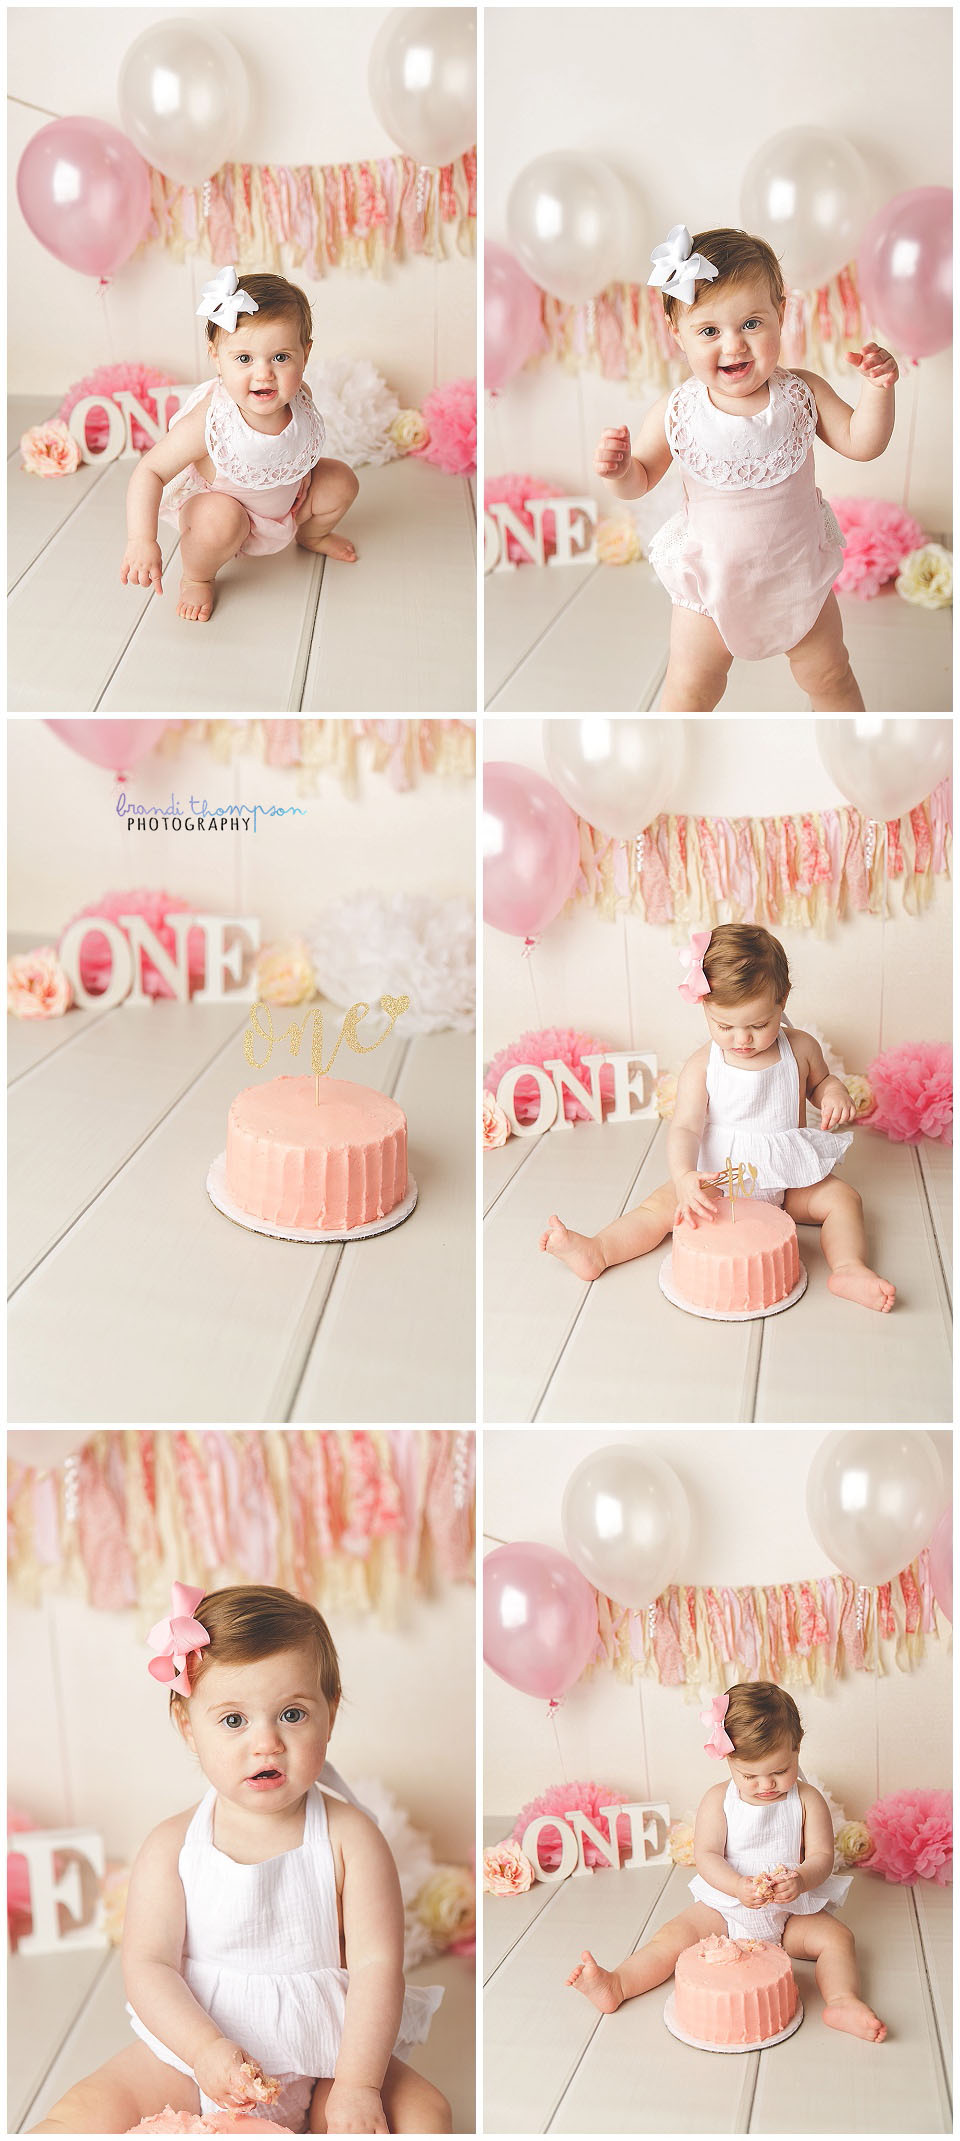 collage of one year old baby girl in studio with pink and white decorations, plano tx photography studio